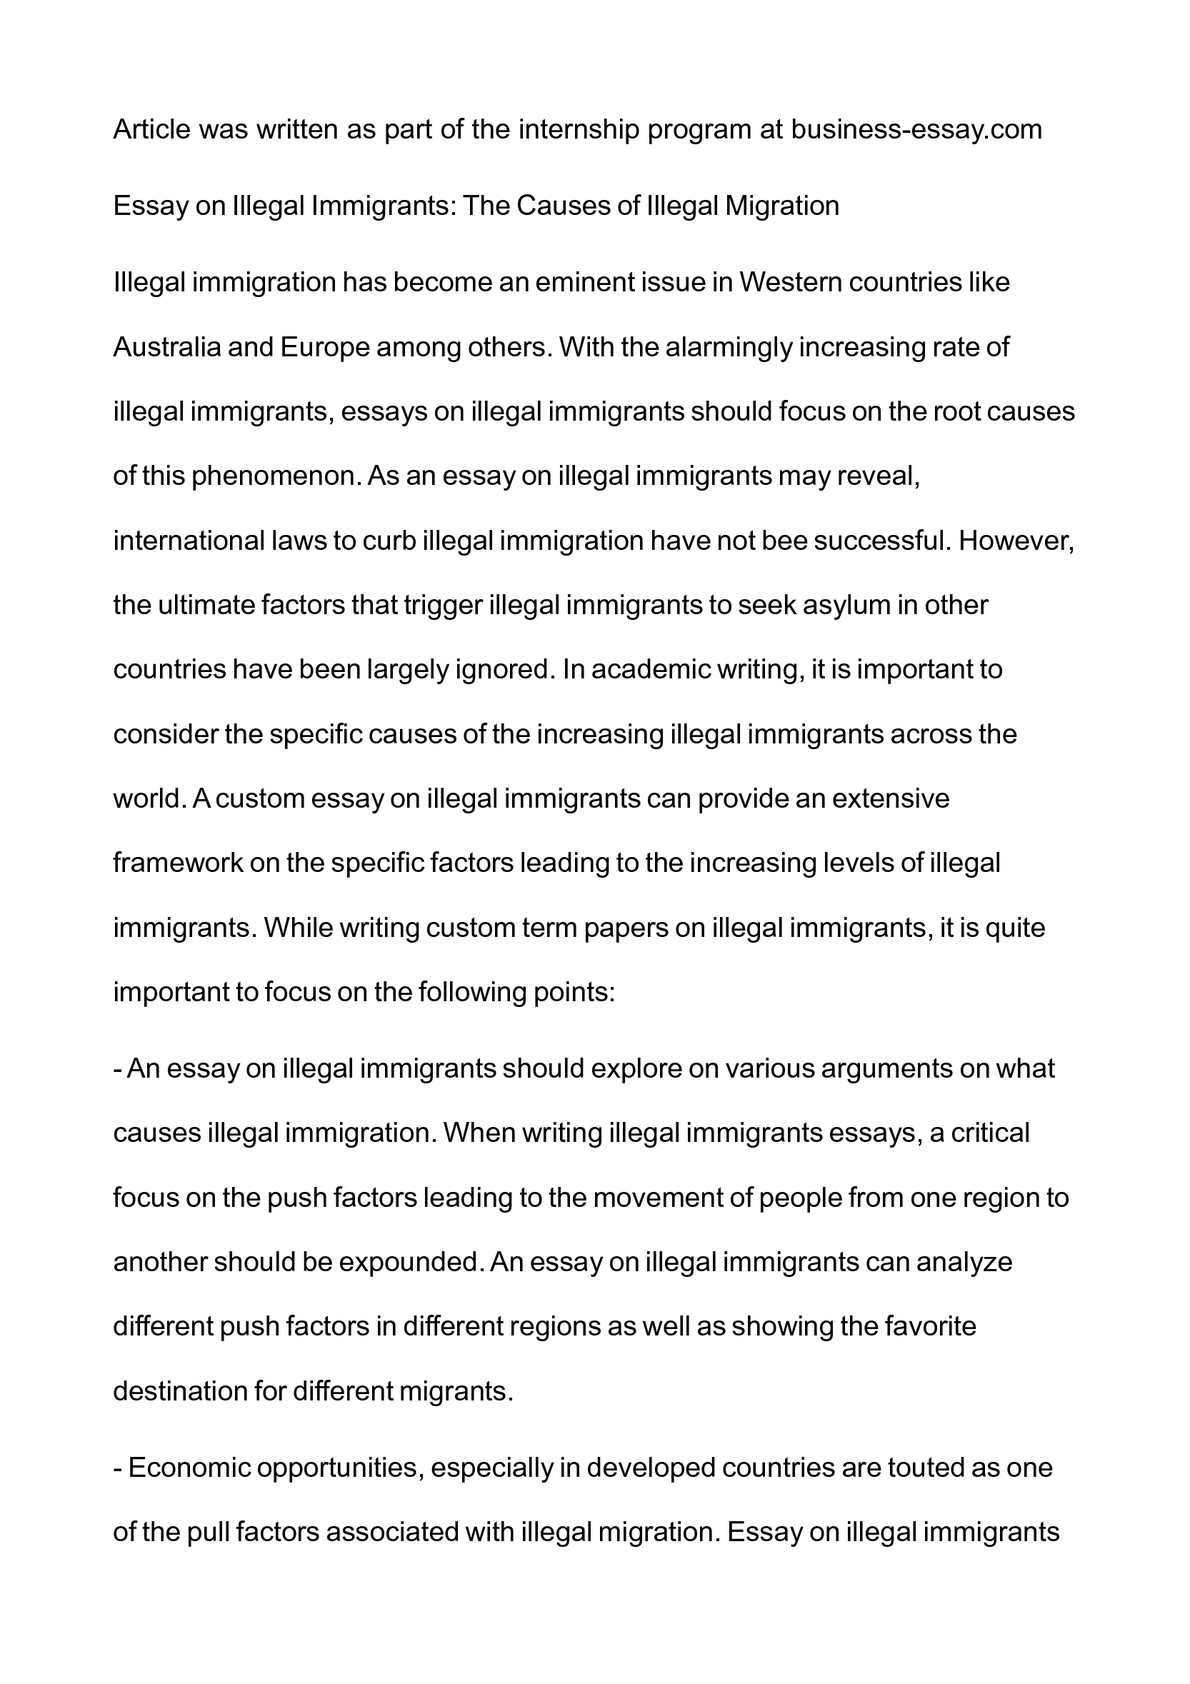 calam atilde copy o essay on illegal immigrants the causes of illegal migration